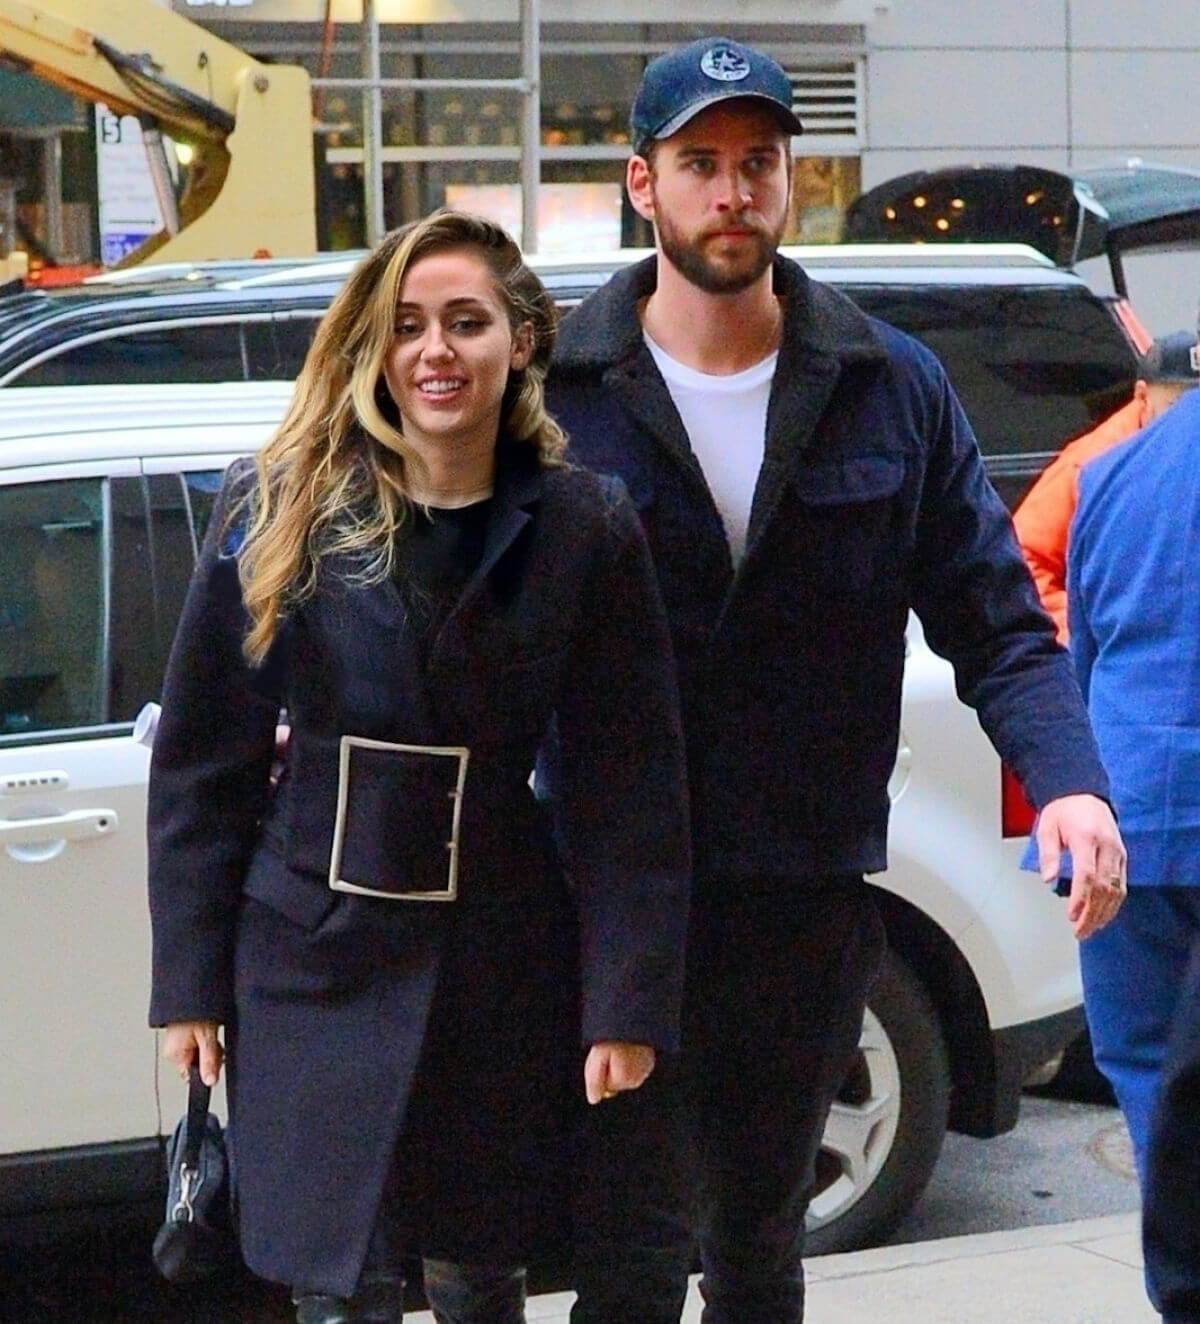 Miley Cyrus and Liam Hemsworth Arrives at NBC Studios in New York 2018/12/15